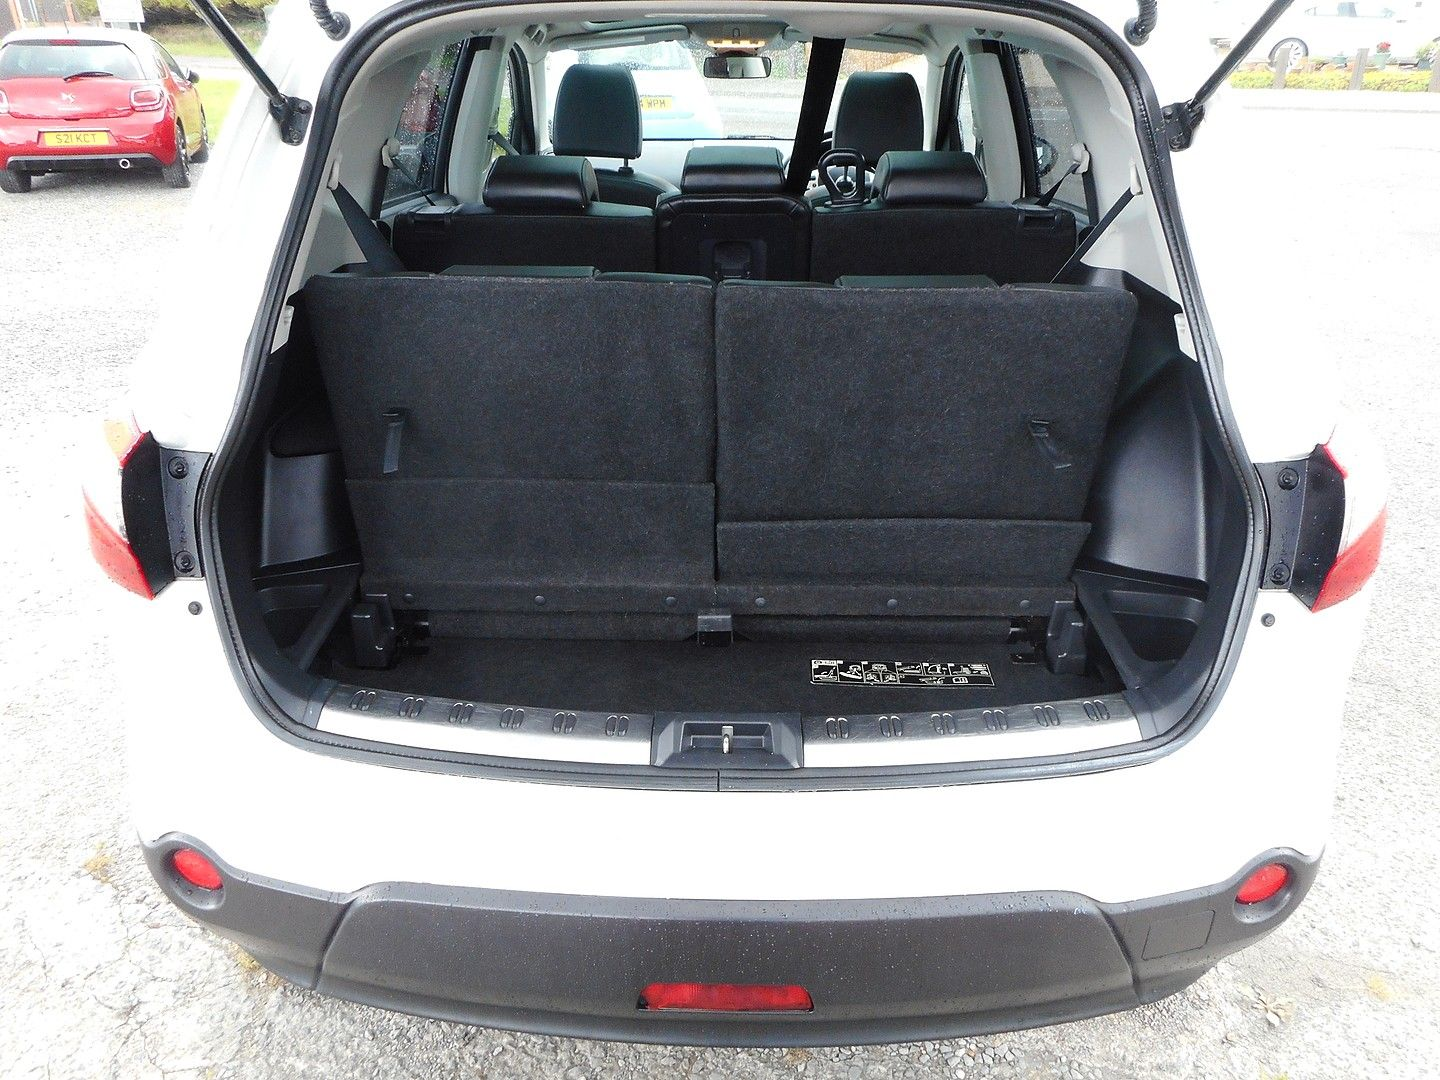 NISSAN QASHQAI 360 1.5 dCi 7 SEATER (2013) - Picture 15